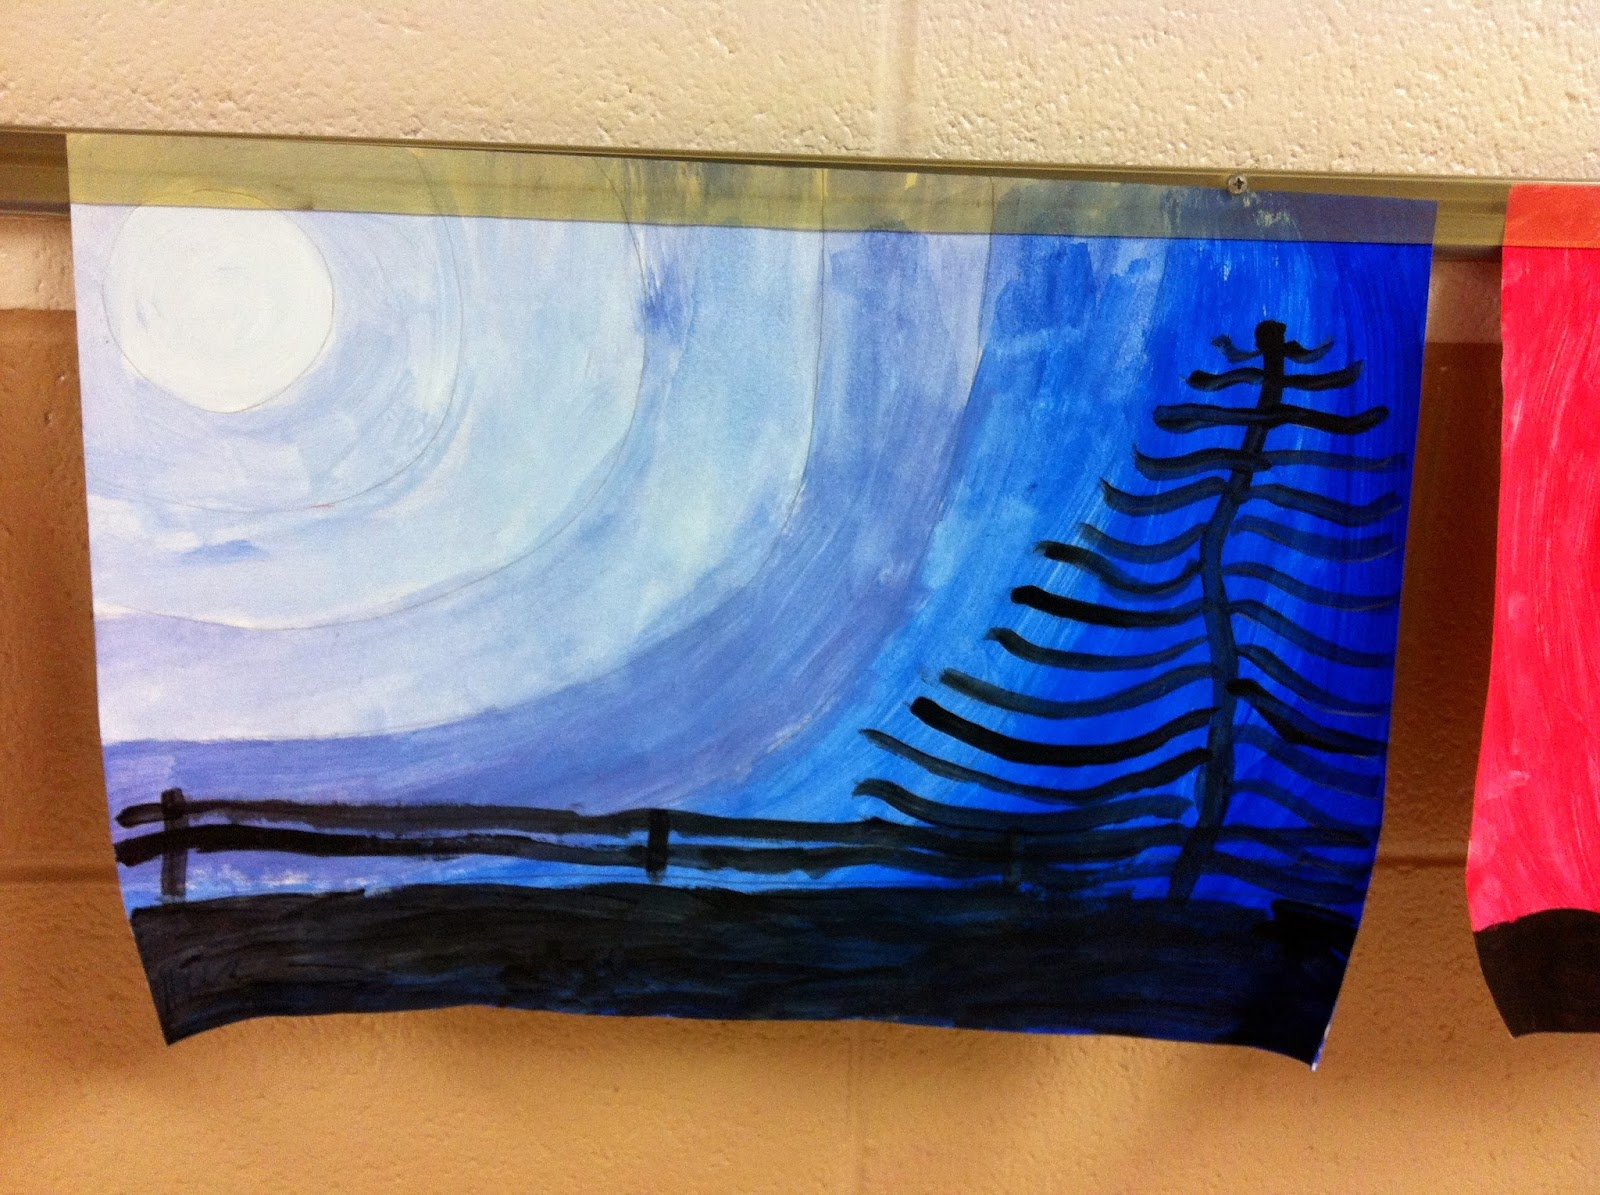 1600x1195 Chumleyscobey Art Room Monochromatic Moonscape Paintings By 4th Grade